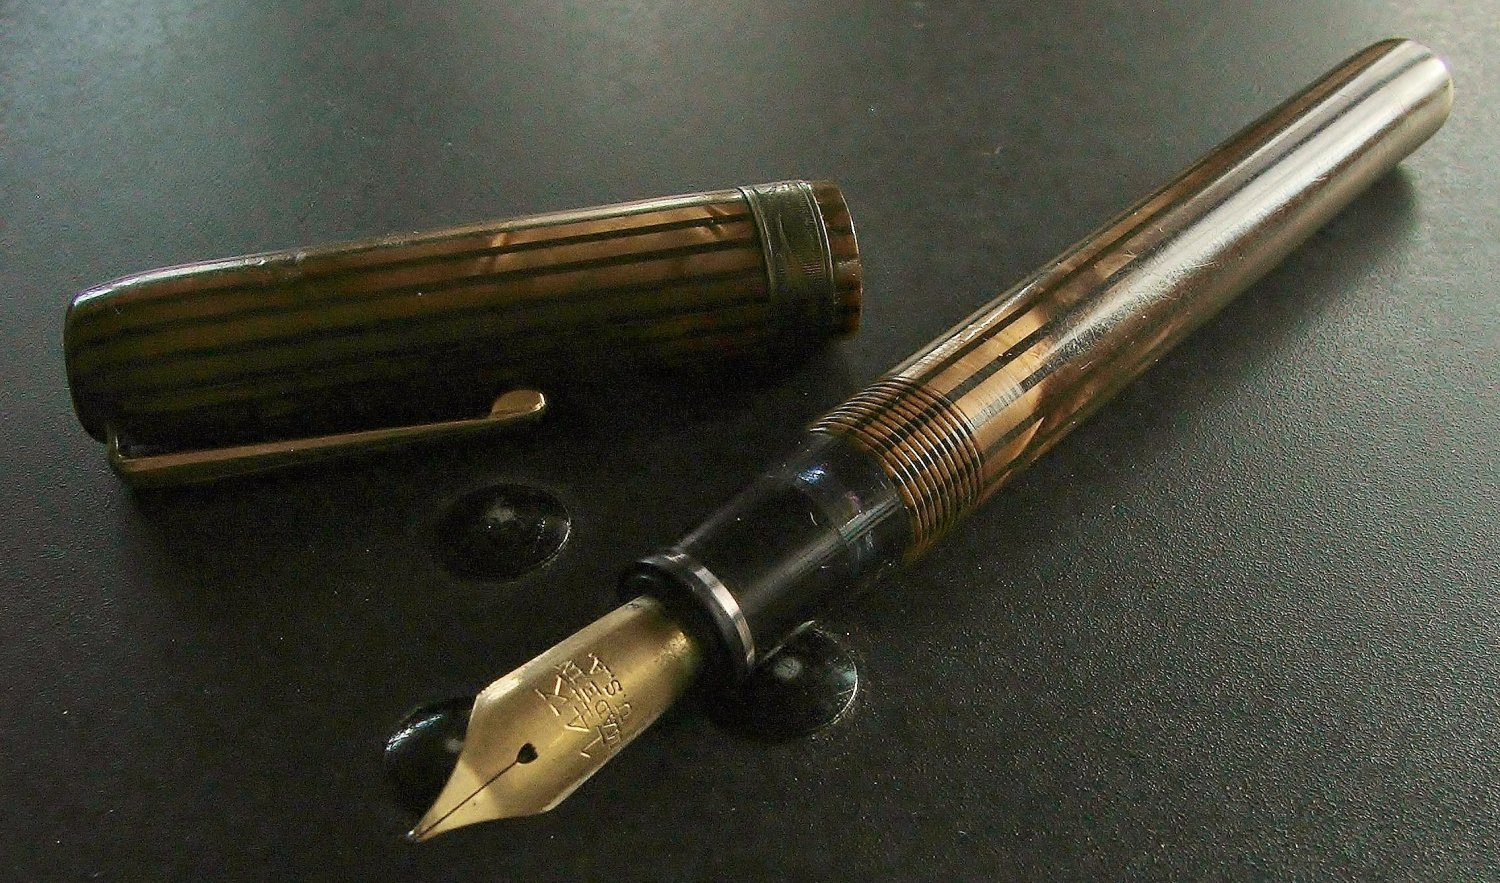 Harris Fountain Pen, Toffee and Brown, Gold Trim c.1930